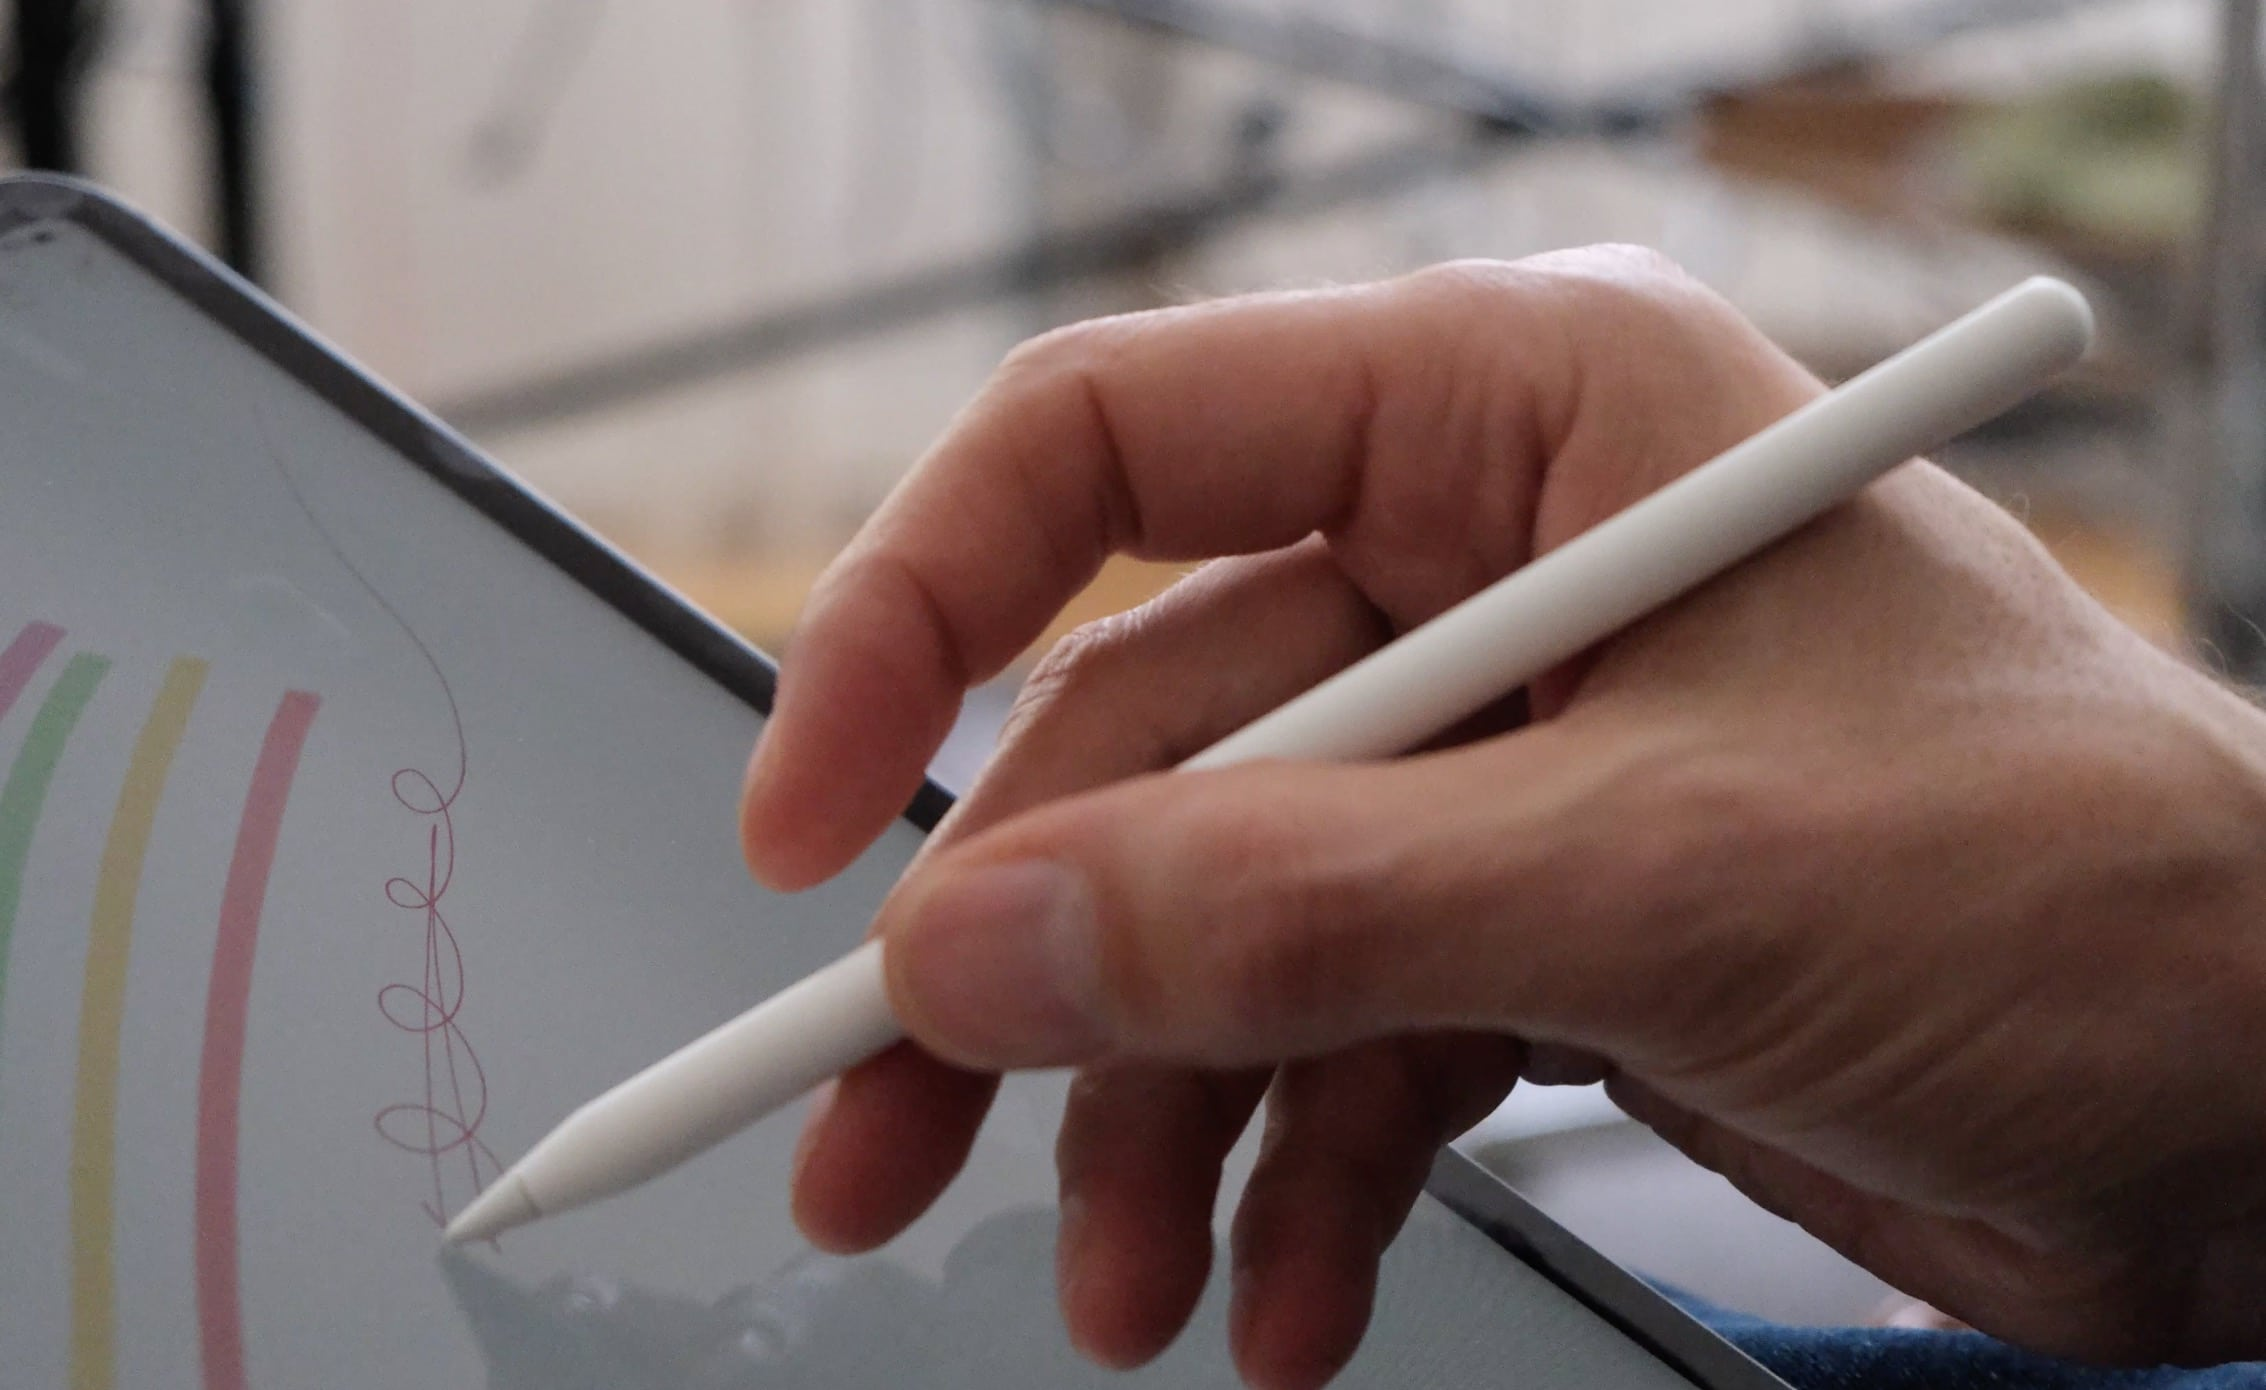 Like everything else, the new Apple Pencil is better.